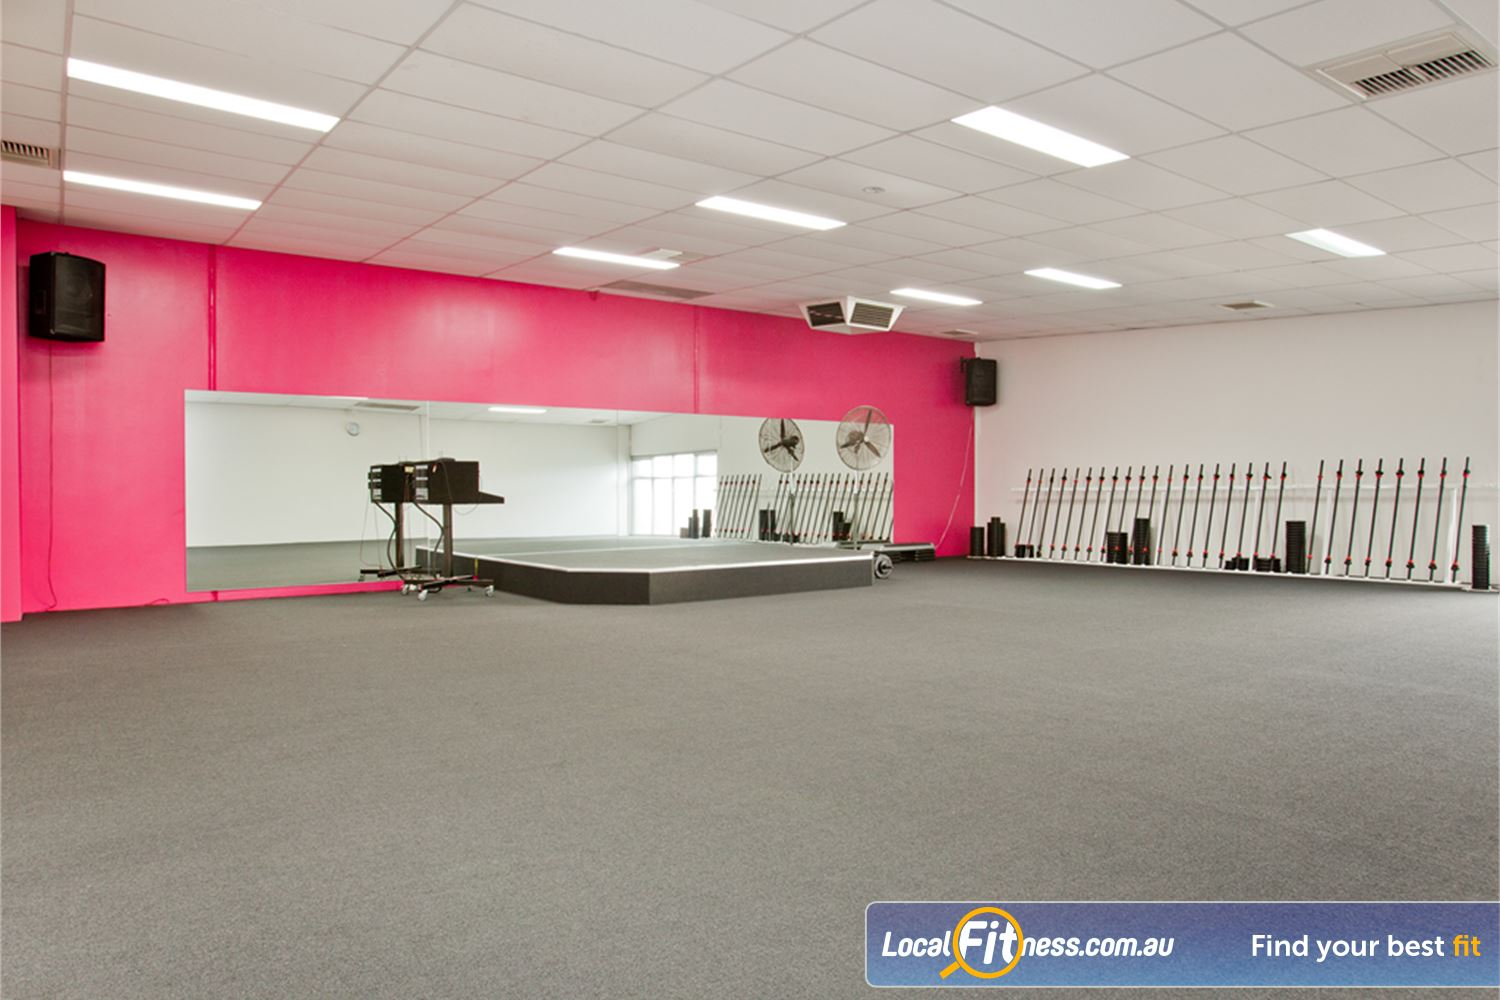 Fernwood Fitness Yarraville Popular group classes including Yarraville Pilates and Zumba.